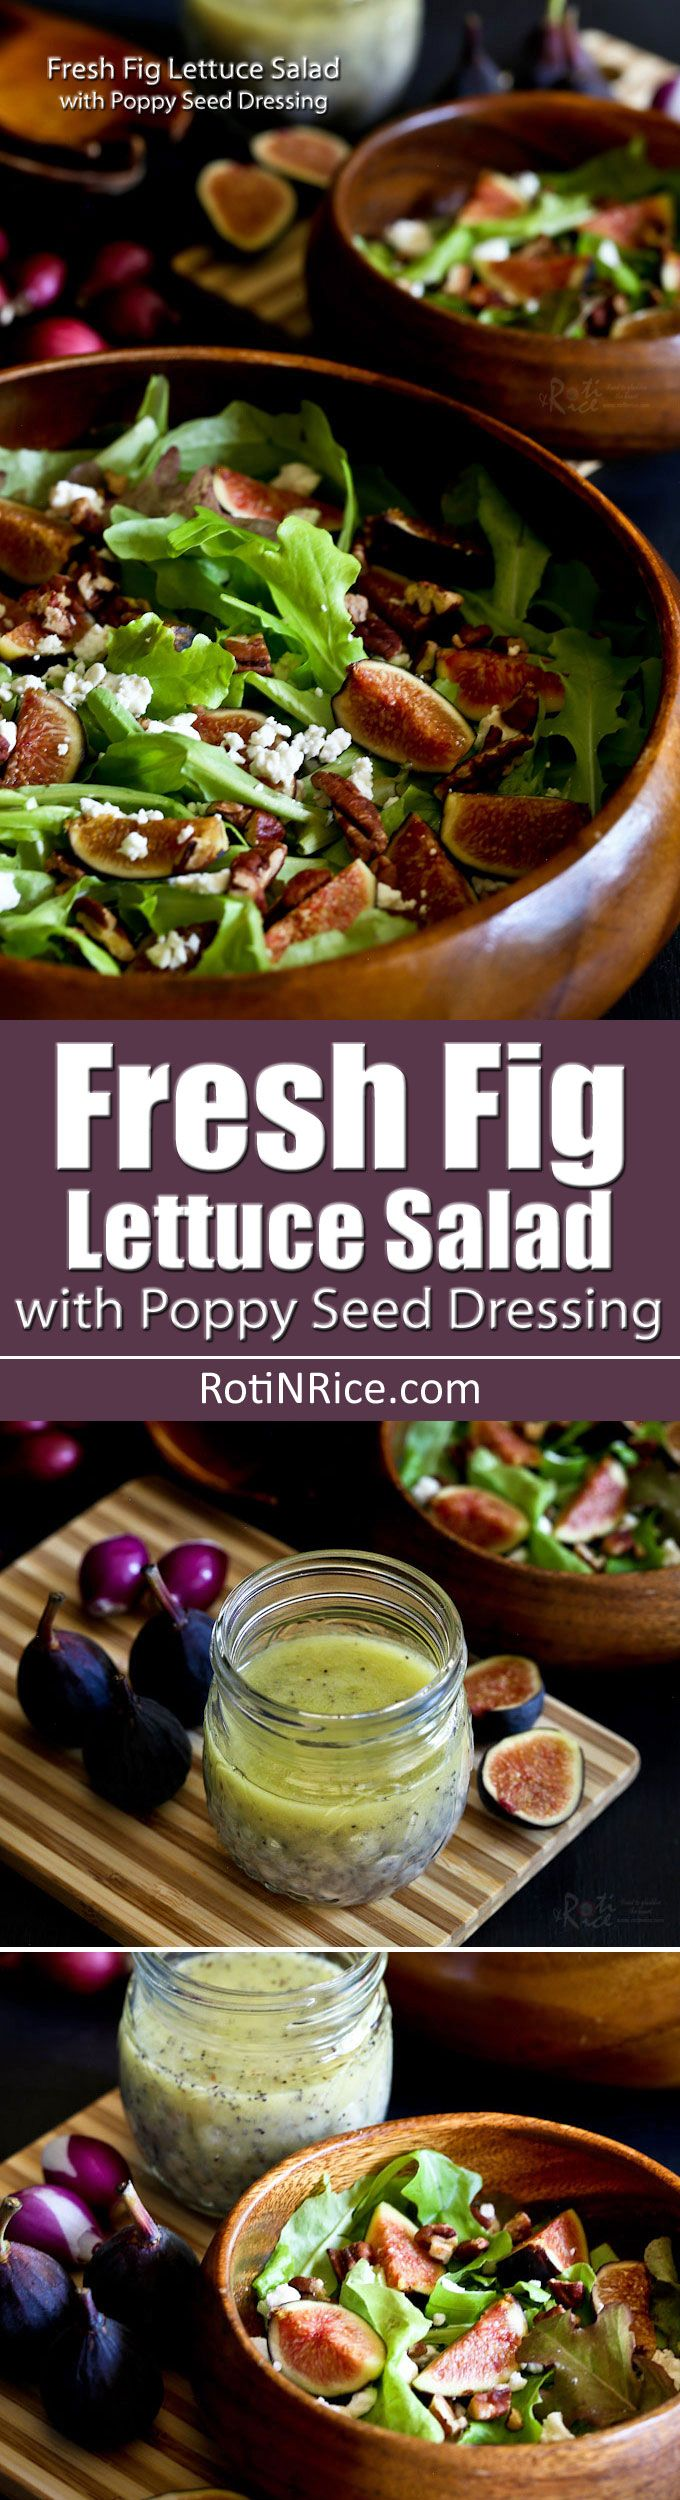 A combo of sweet and tart flavors and a variety of textures make this Fresh Fig Lettuce Salad with Poppy Seed Dressing a must-try when figs are in season.   RotiNRice.com